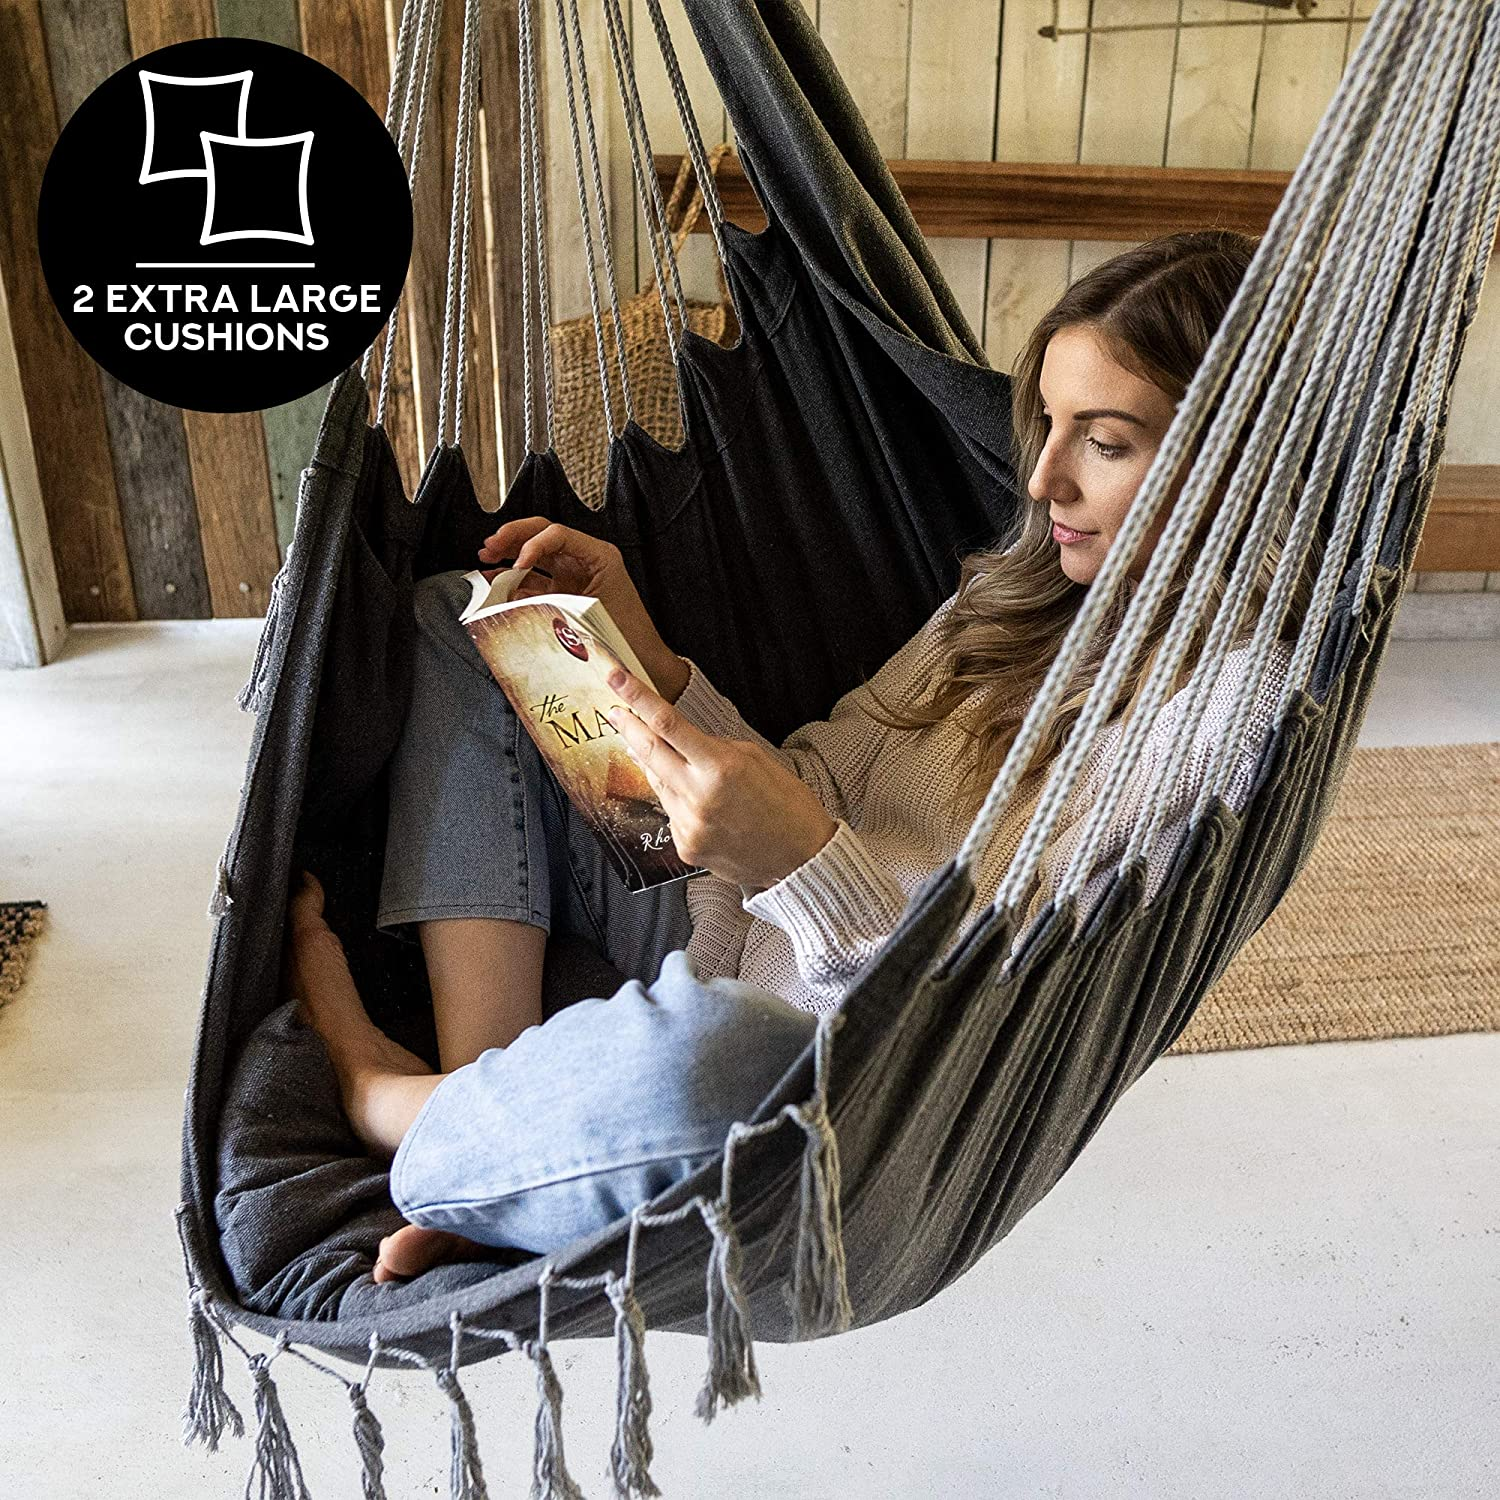 corona-hammock-chair-for-reading-and-relaxing-with-pocket